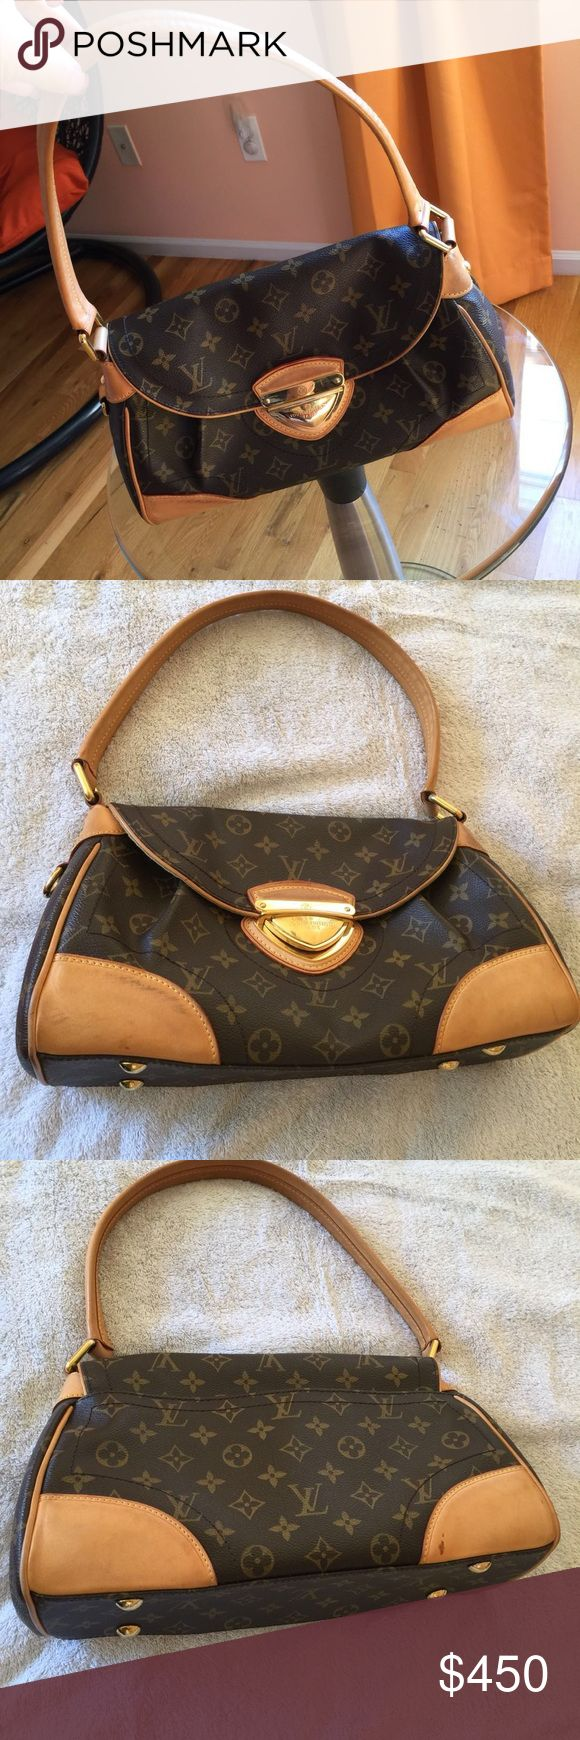 Authentic Louis Vuitton bag Date code is SD0098. 100% authentic. Pre-loved. No rips or structure issue. Normal use! Condition is shown in the pictures. Please no low ball. Thanks Louis Vuitton Bags Hobos